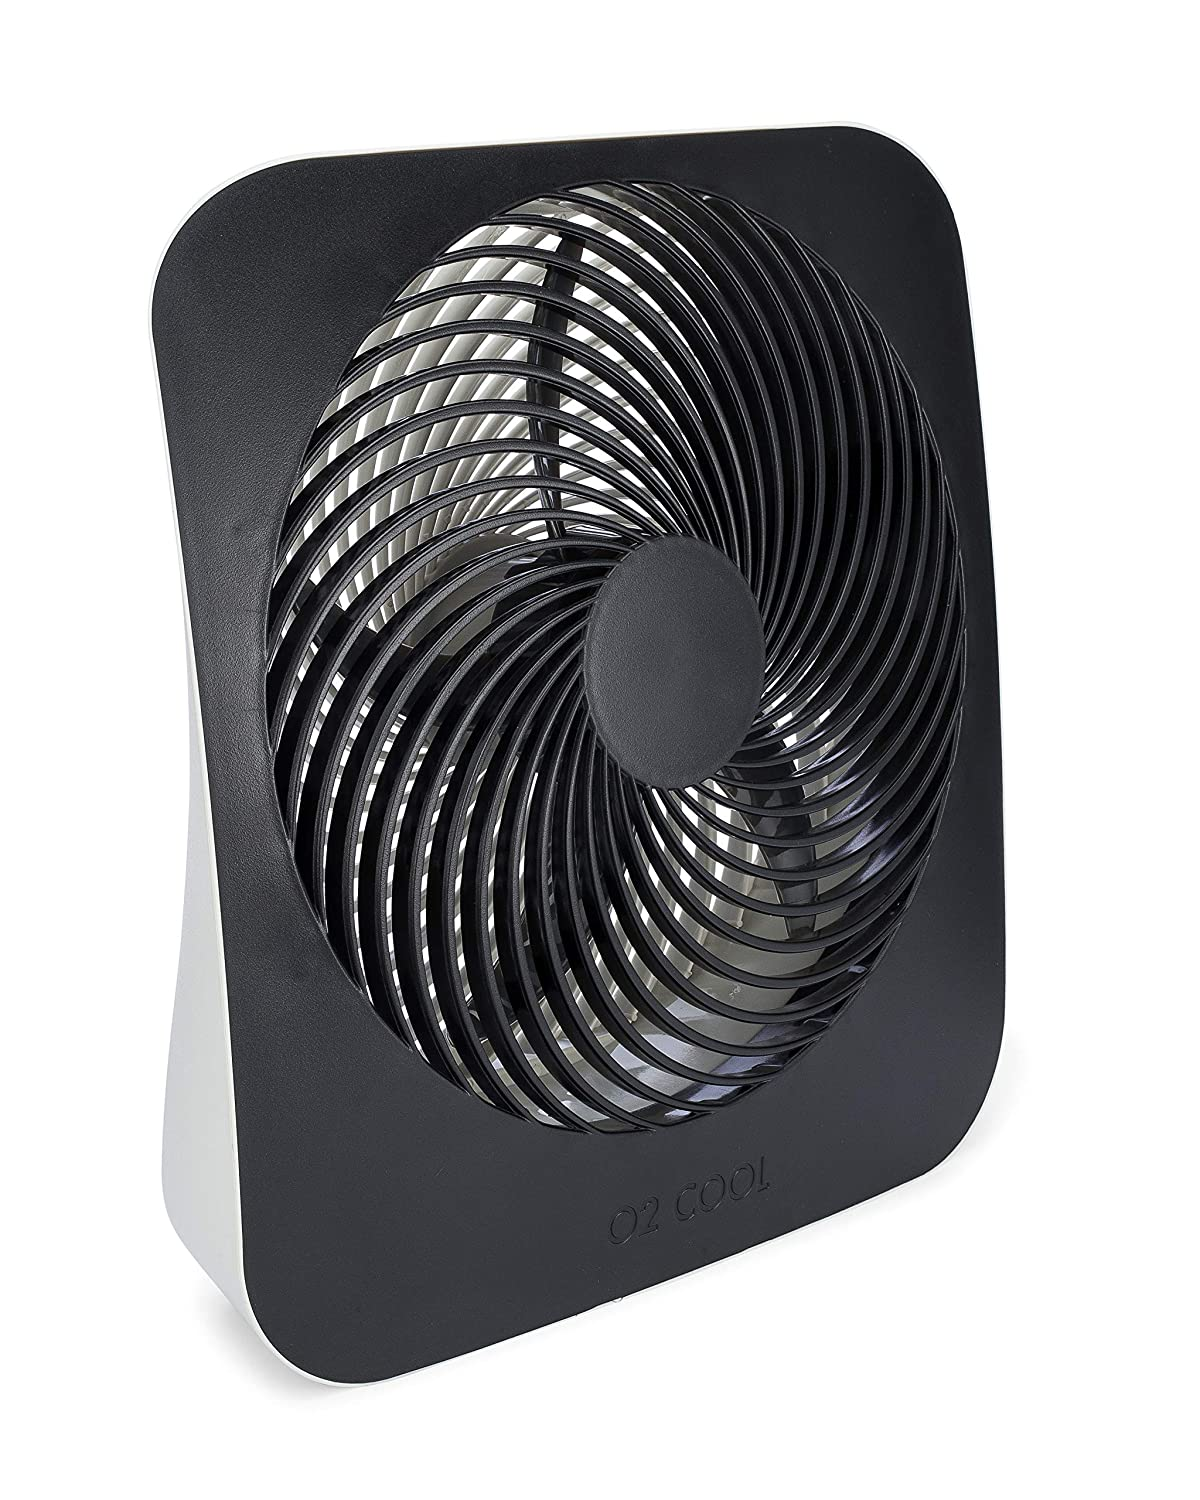 O2 Cool 10 inch Battery or Electric Portable Fan O2COOL FD10002A0O004000